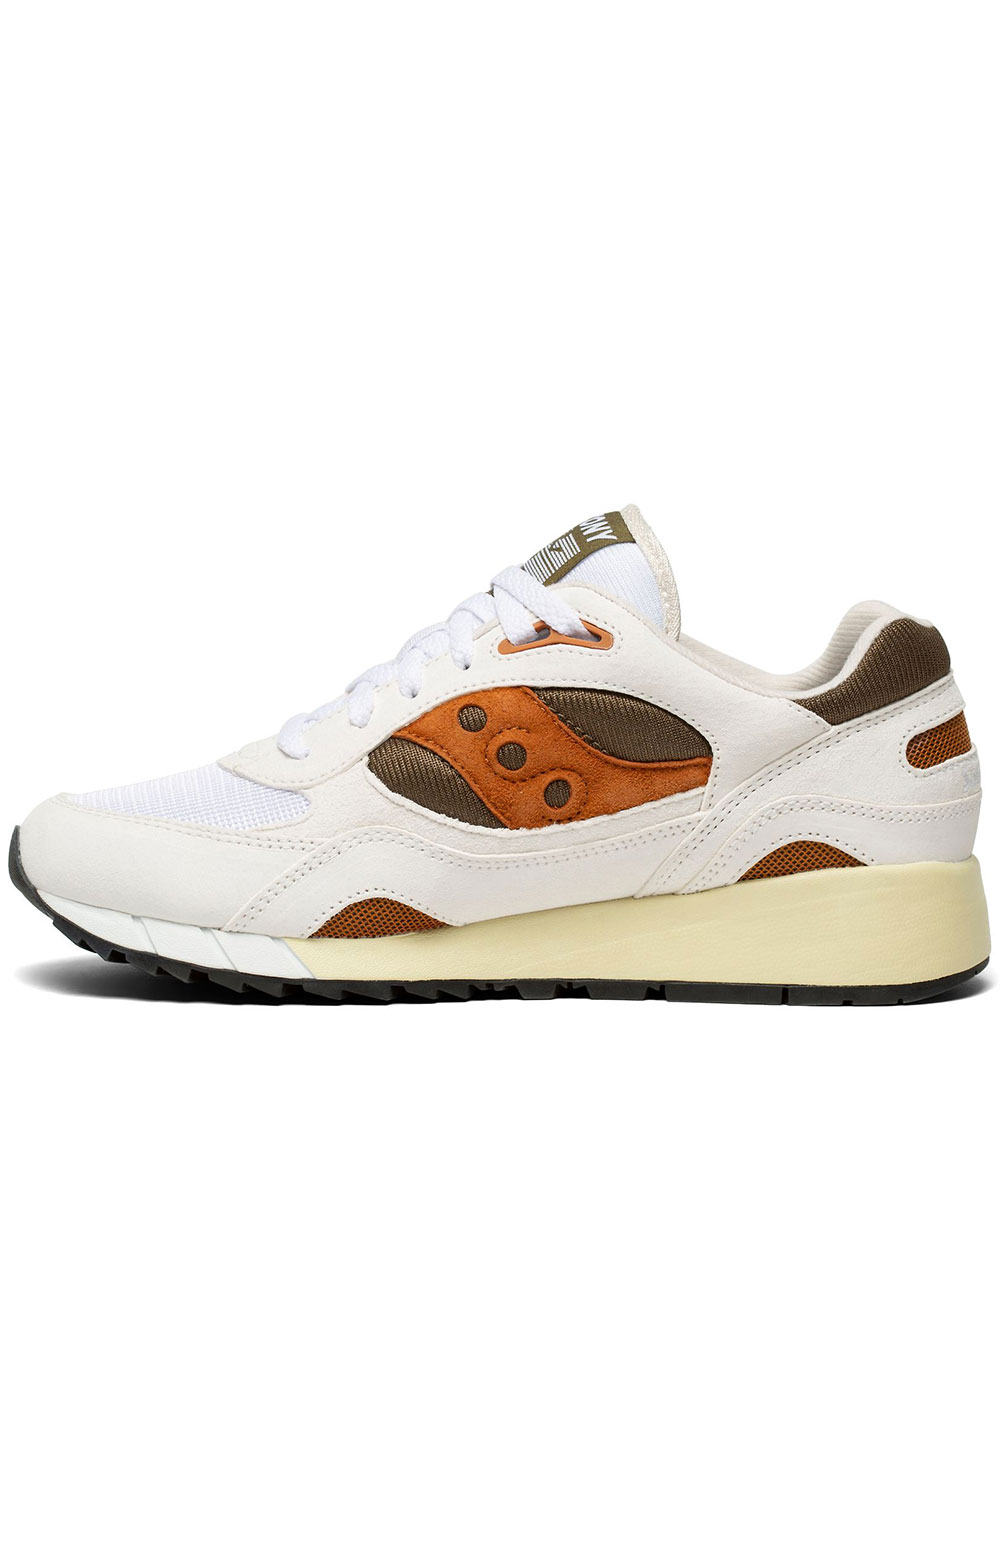 (S70441-14) Shadow 6000 Shoes - White/Rust 2